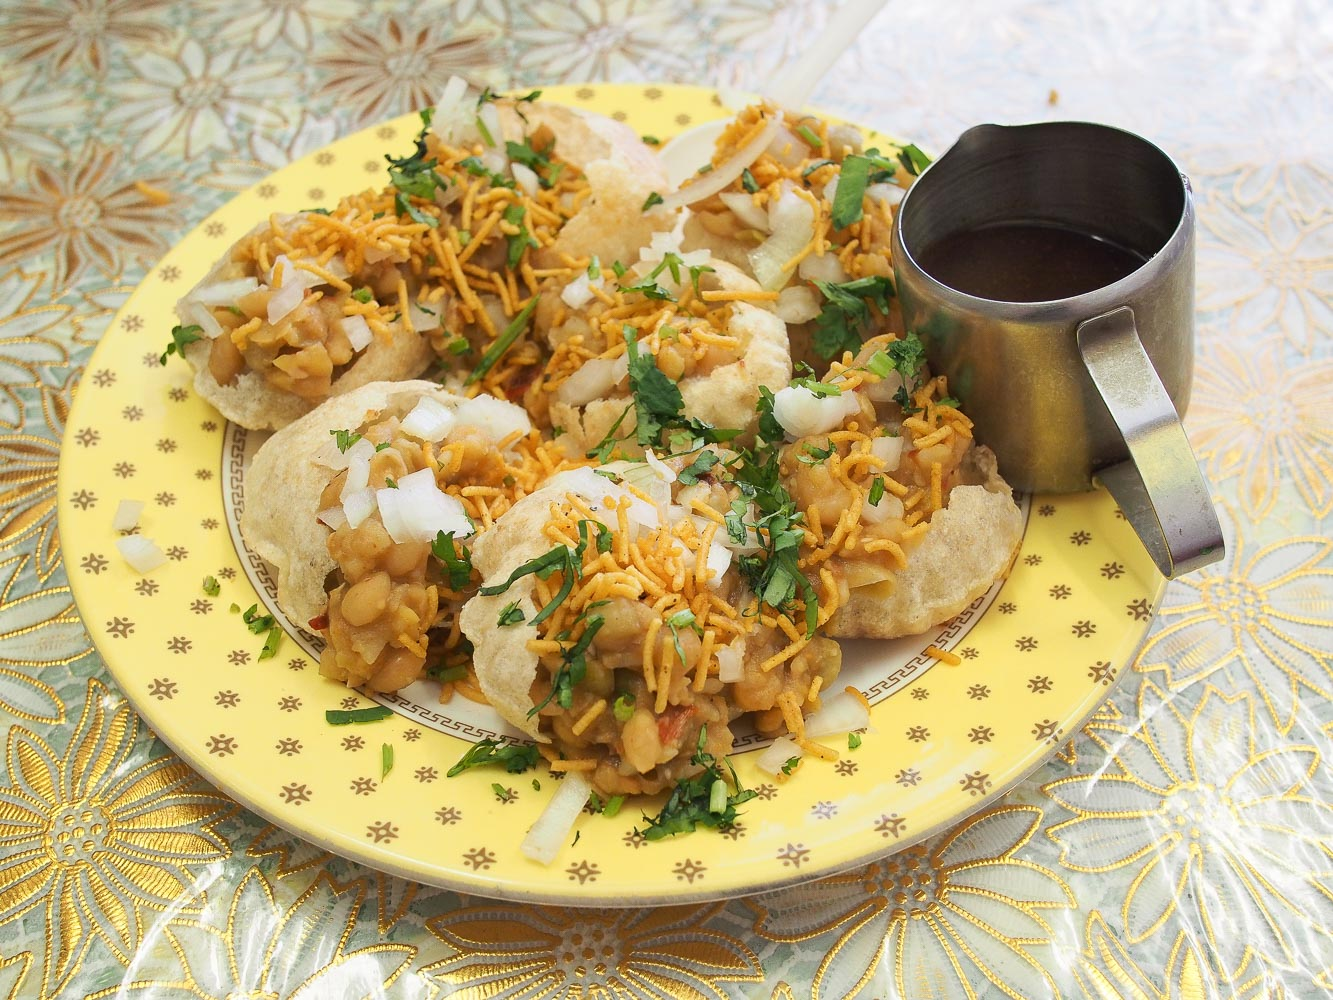 B kyu fuska house bangladeshi rockdale because this is fuska house it was necessary to try the bangladesh version of pani puri known here as fuska the inside is filled with a mix of cooked forumfinder Gallery